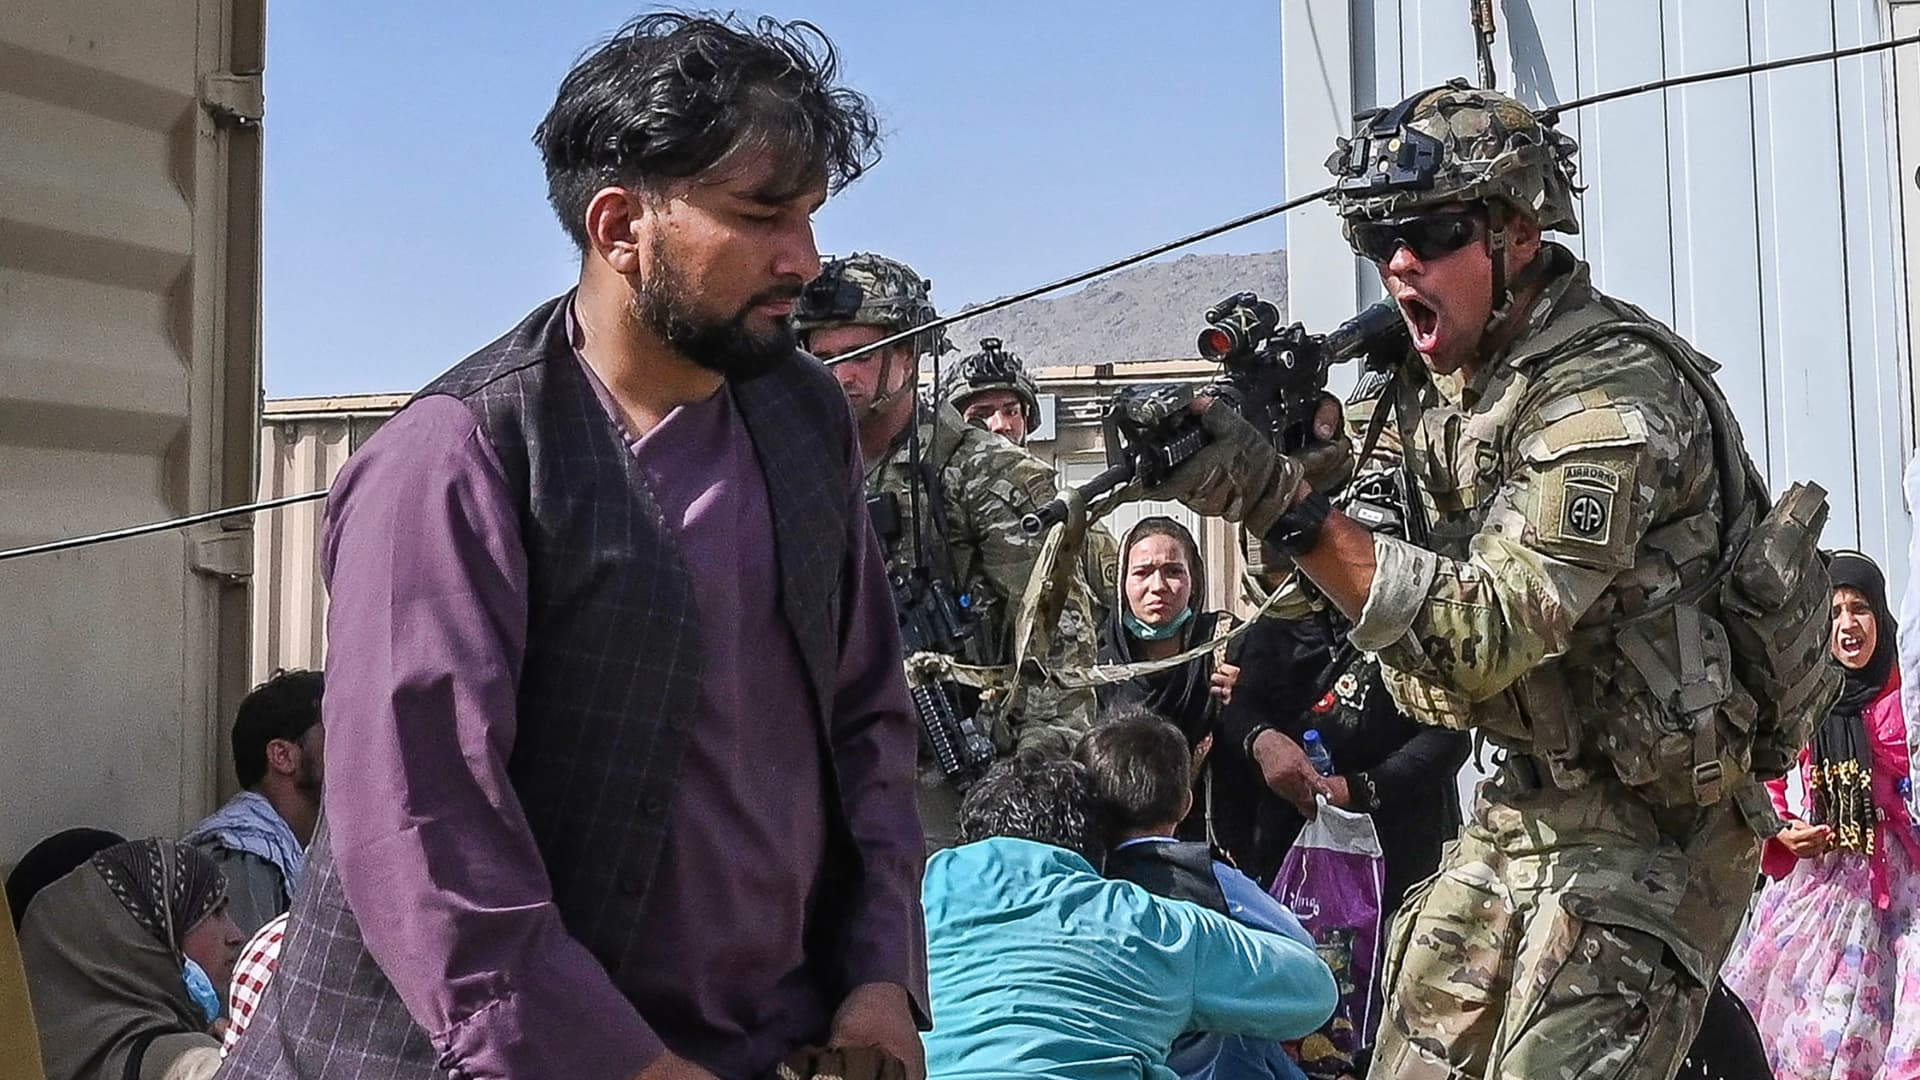 A US soldier (C) point his gun towards an Afghan passenger at the Kabul airport in Kabul on August 16, 2021, after a stunningly swift end to Afghanistan's 20-year war, as thousands of people mobbed the city's airport trying to flee the group's feared hardline brand of Islamist rule.